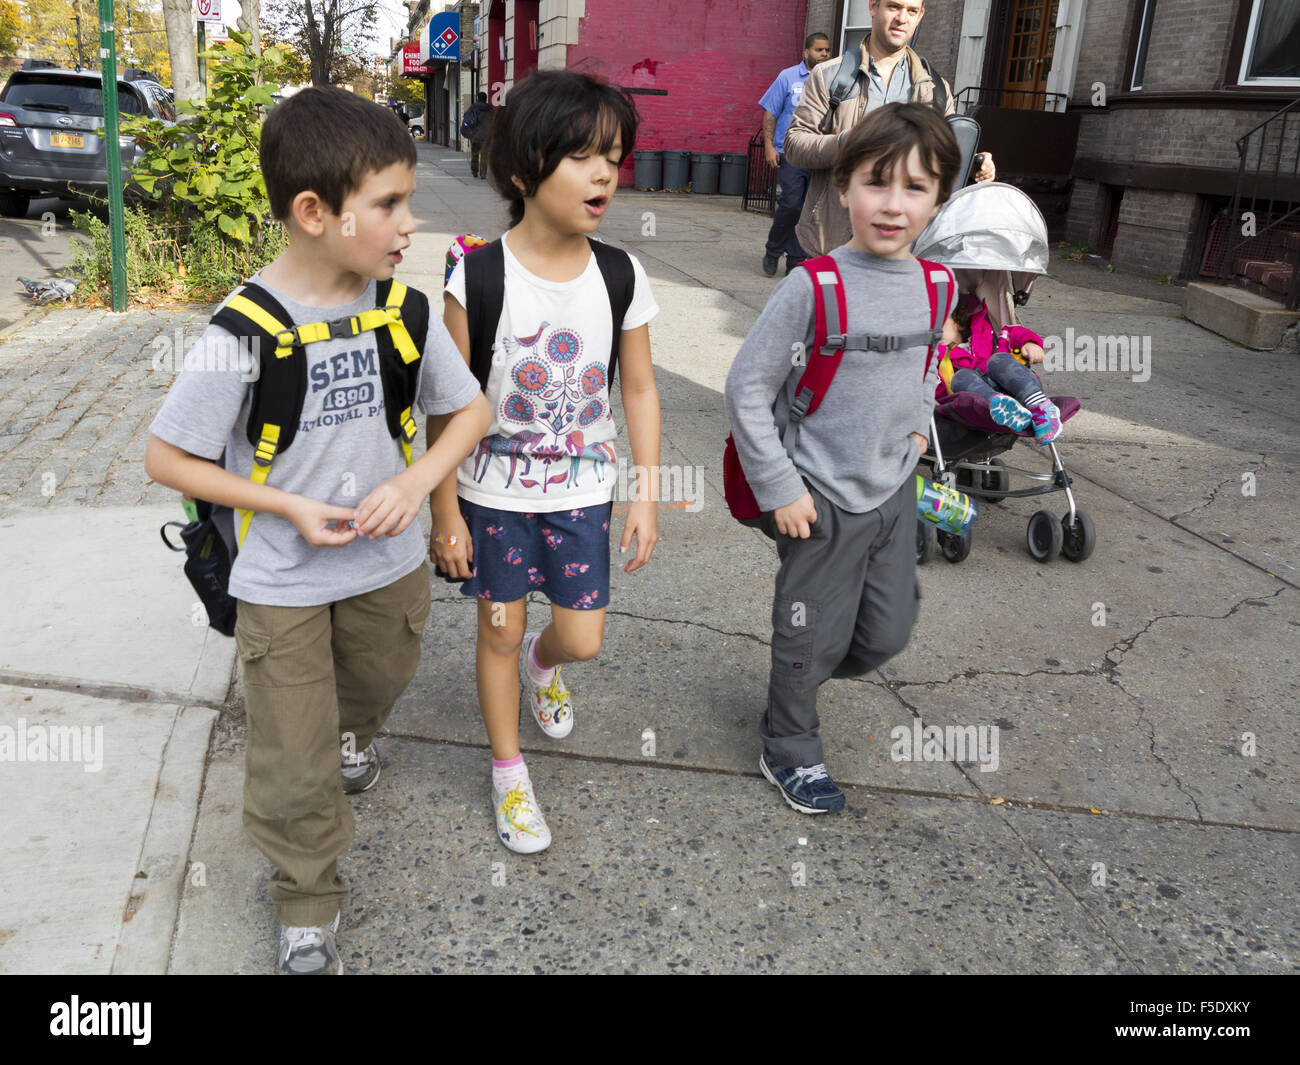 Children going home with their mother after school in Ditmas Park, Brooklyn, NY, 2015. - Stock Image